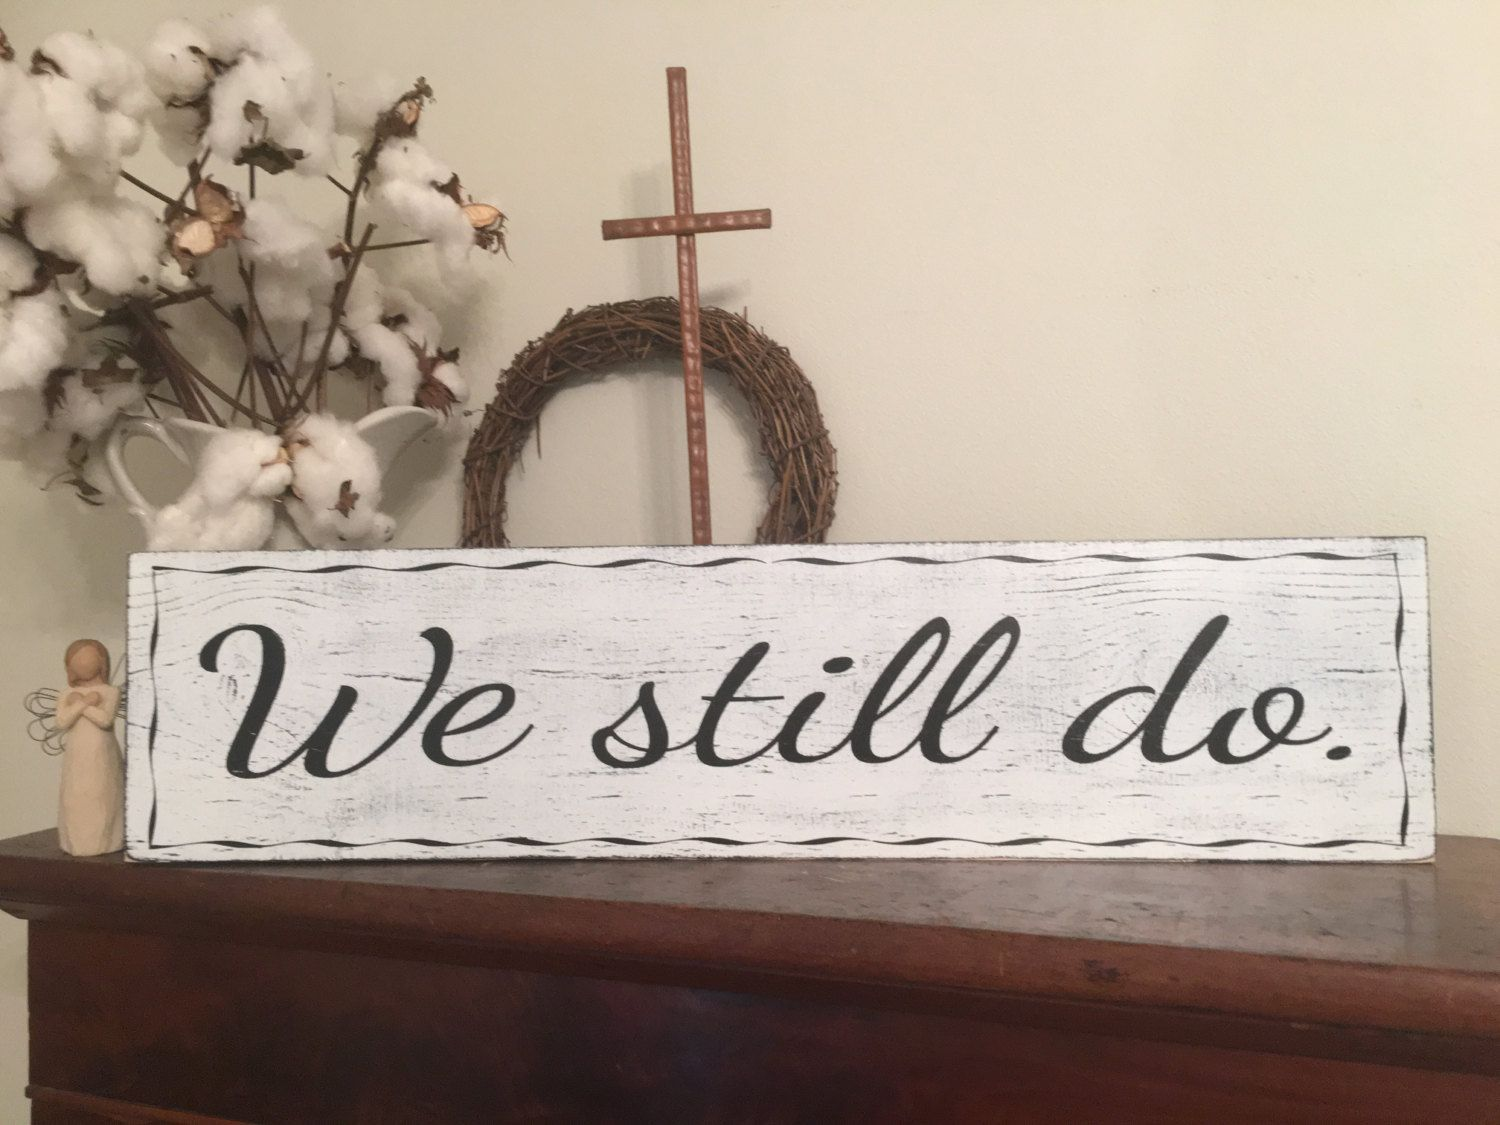 Wall Signs Decor Interesting We Still Do Sign Fixer Upper Inspired Signs30X725 Rustic Wood Design Ideas